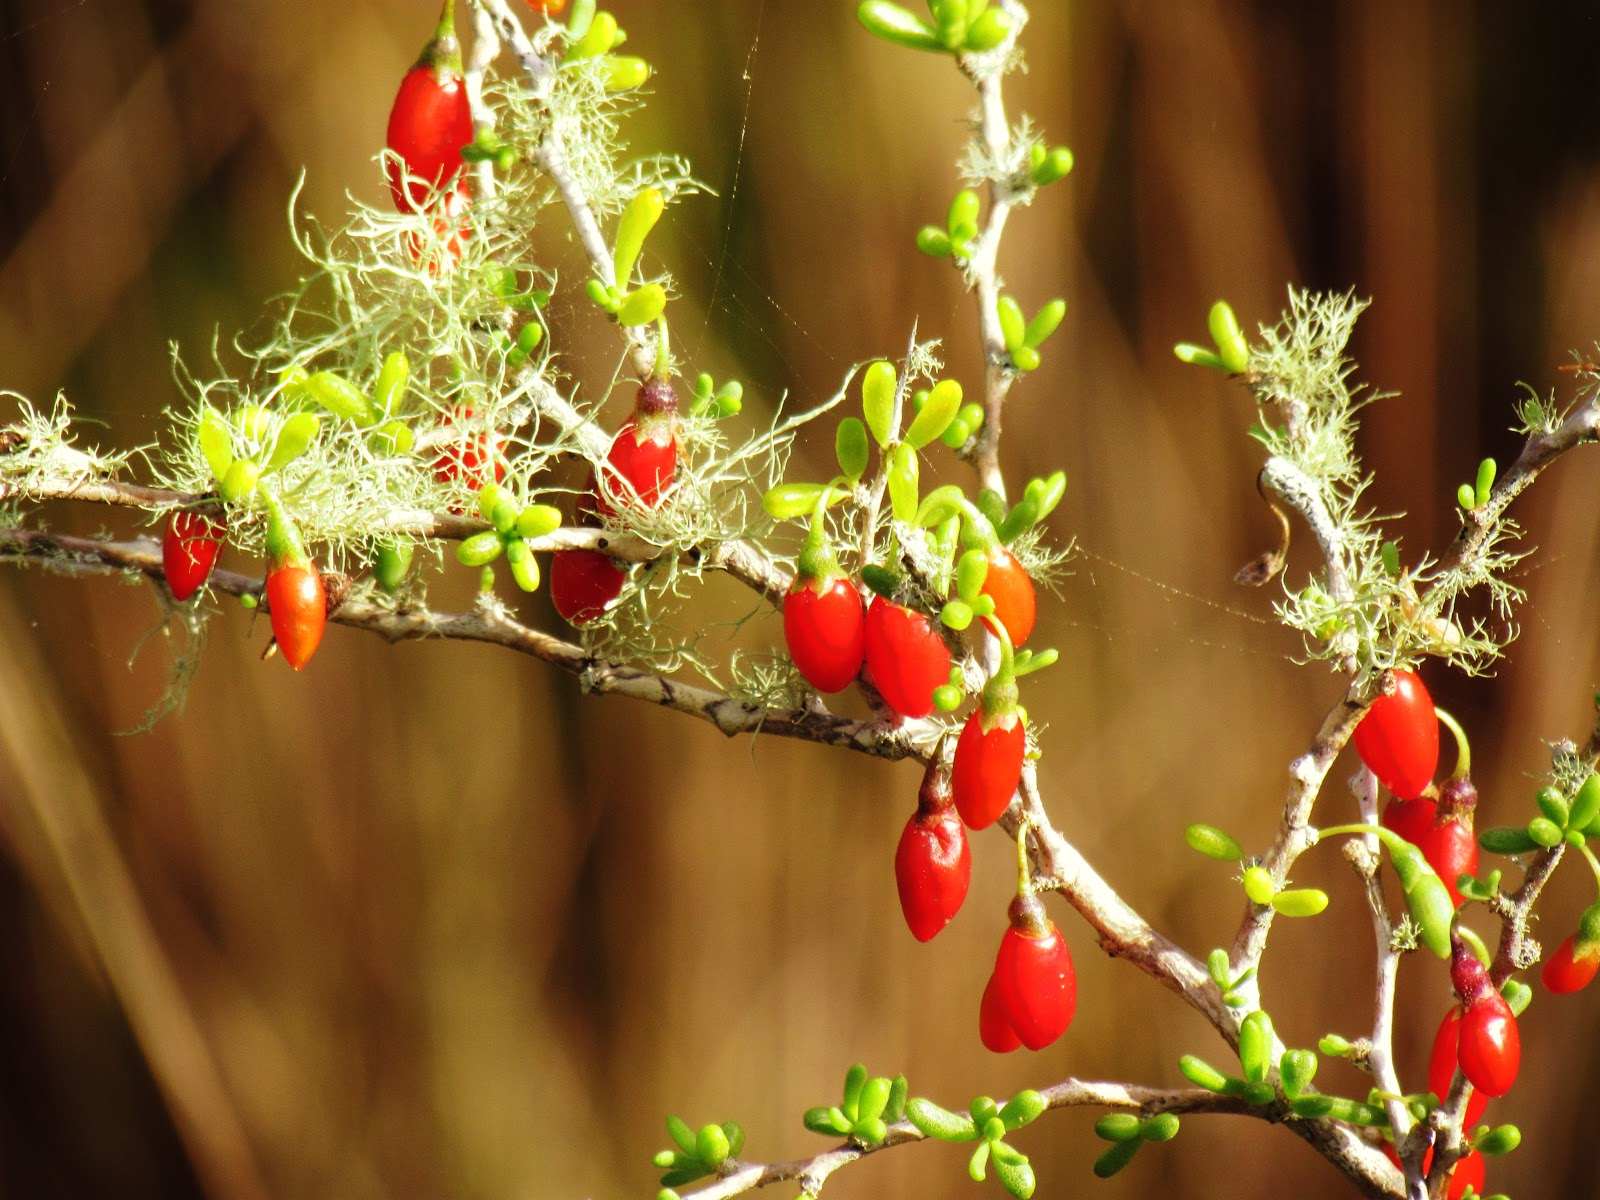 Red berries growing naturally in Florida on the hiking trails in Hammock Park in Dunedin, Florida